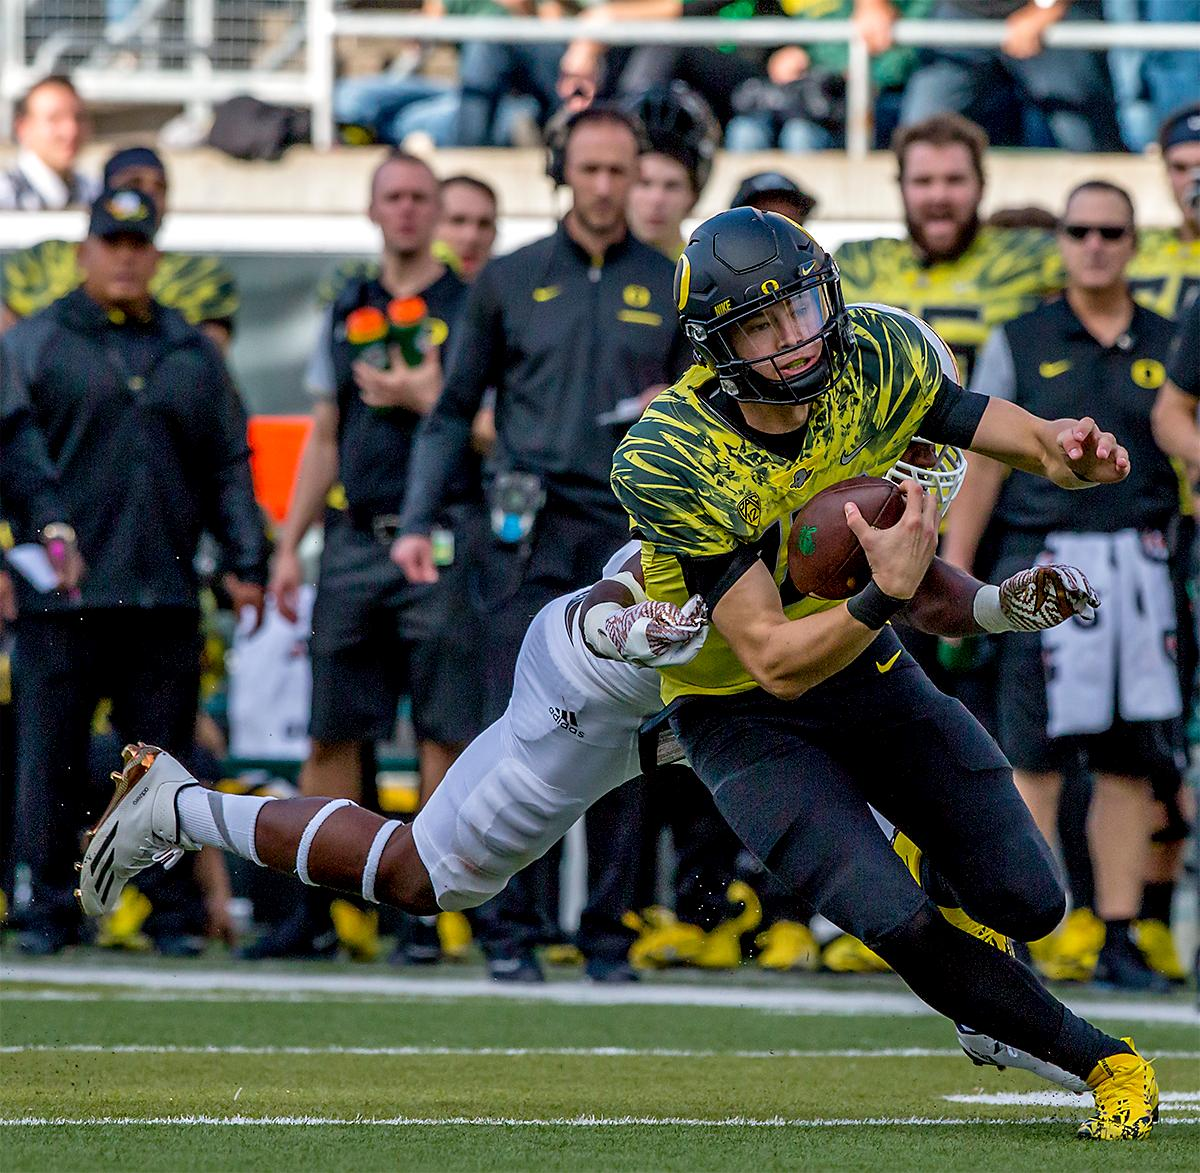 The Duck's Justin Herbert (#10) runs the ball down the field. The Oregon Ducks broke their losing streak by defeating the ASU Sun Devils on Saturday 54-35. Photo by August Frank, Oregon News Lab